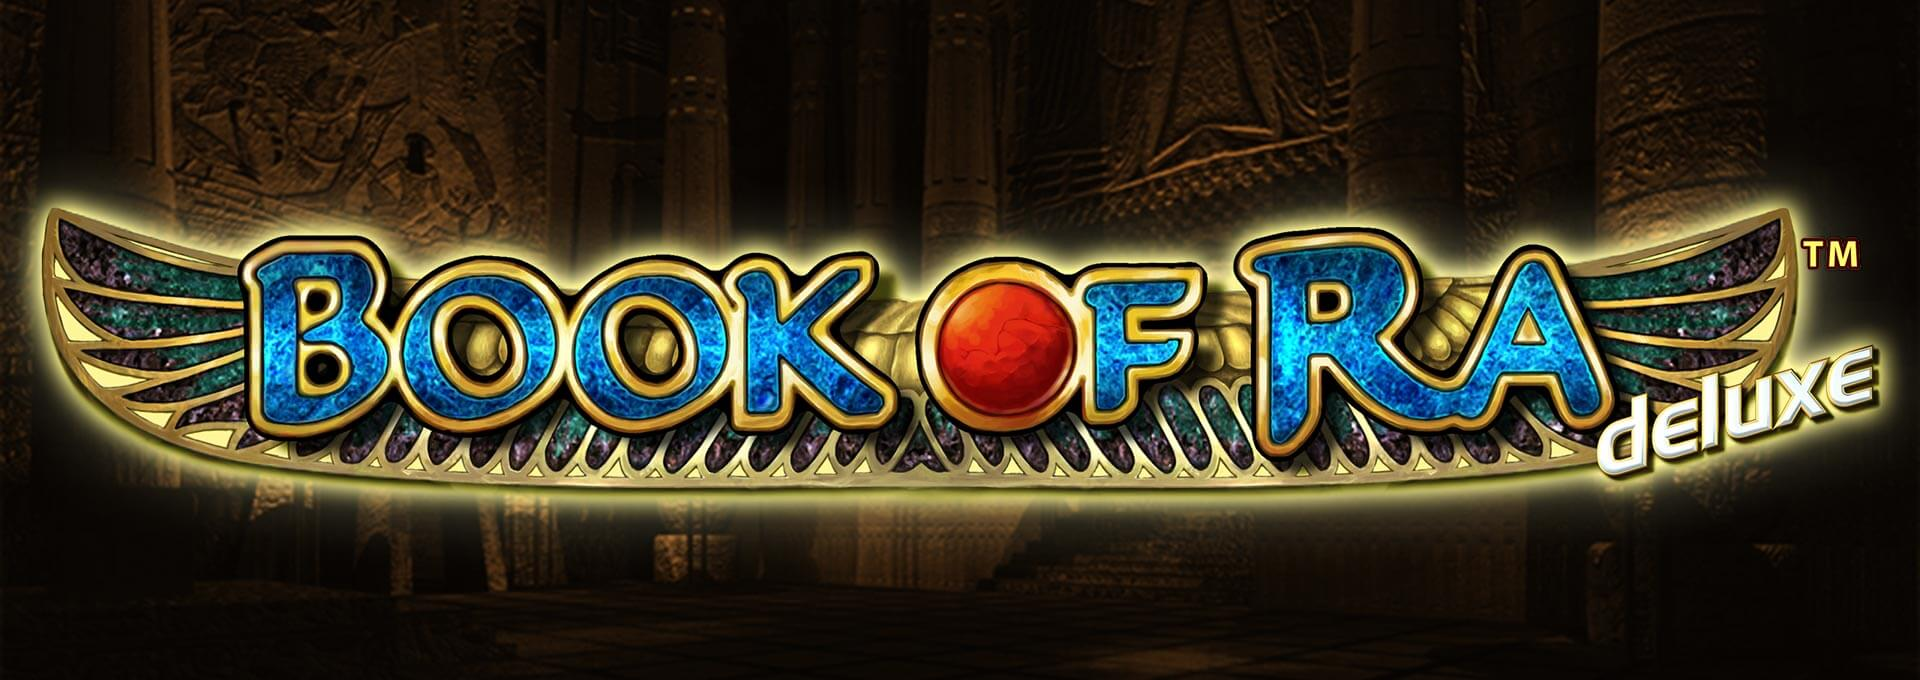 online internet casino book of ra deluxe